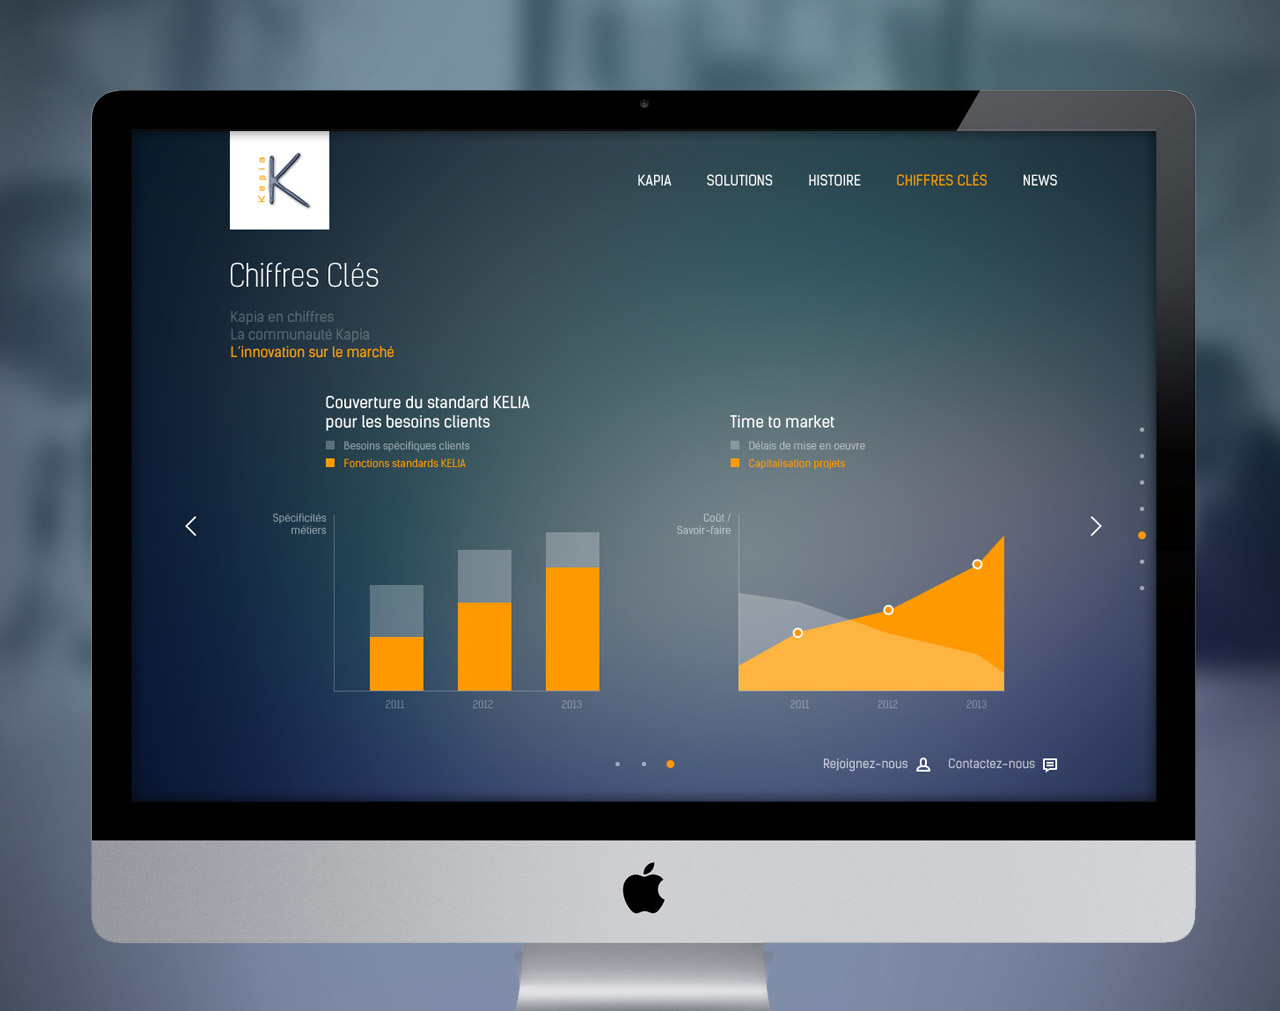 kapia-solutions-chiffres-3-site-internet-responsive-design-creation-communication-caconcept-alexis-cretin-graphiste